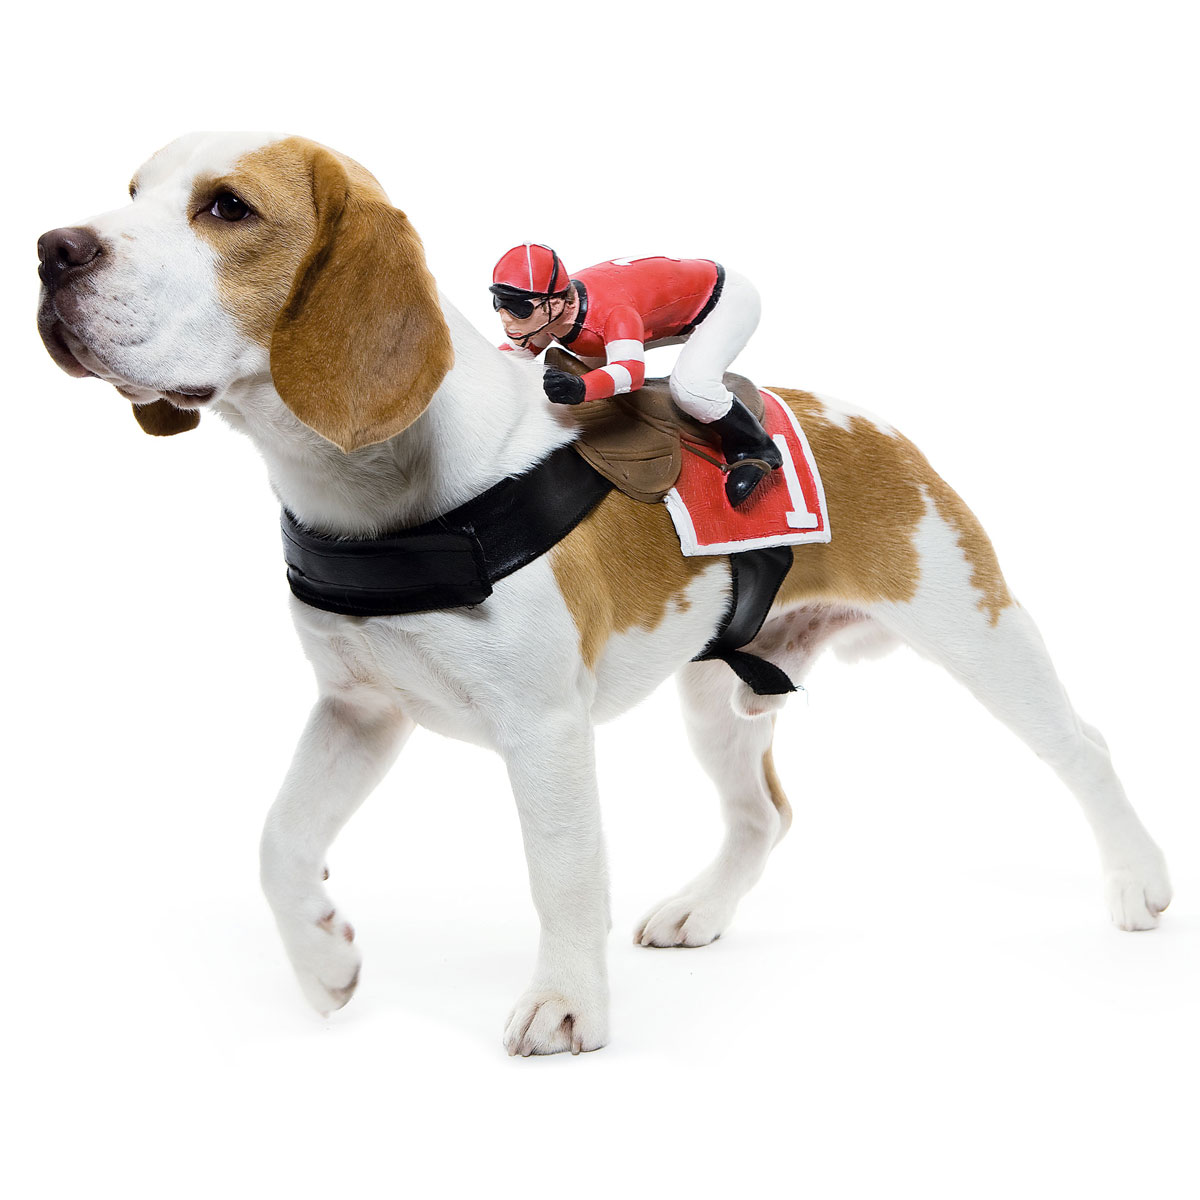 32 Puppy Horse Harness Racing Costume Via The Green Head